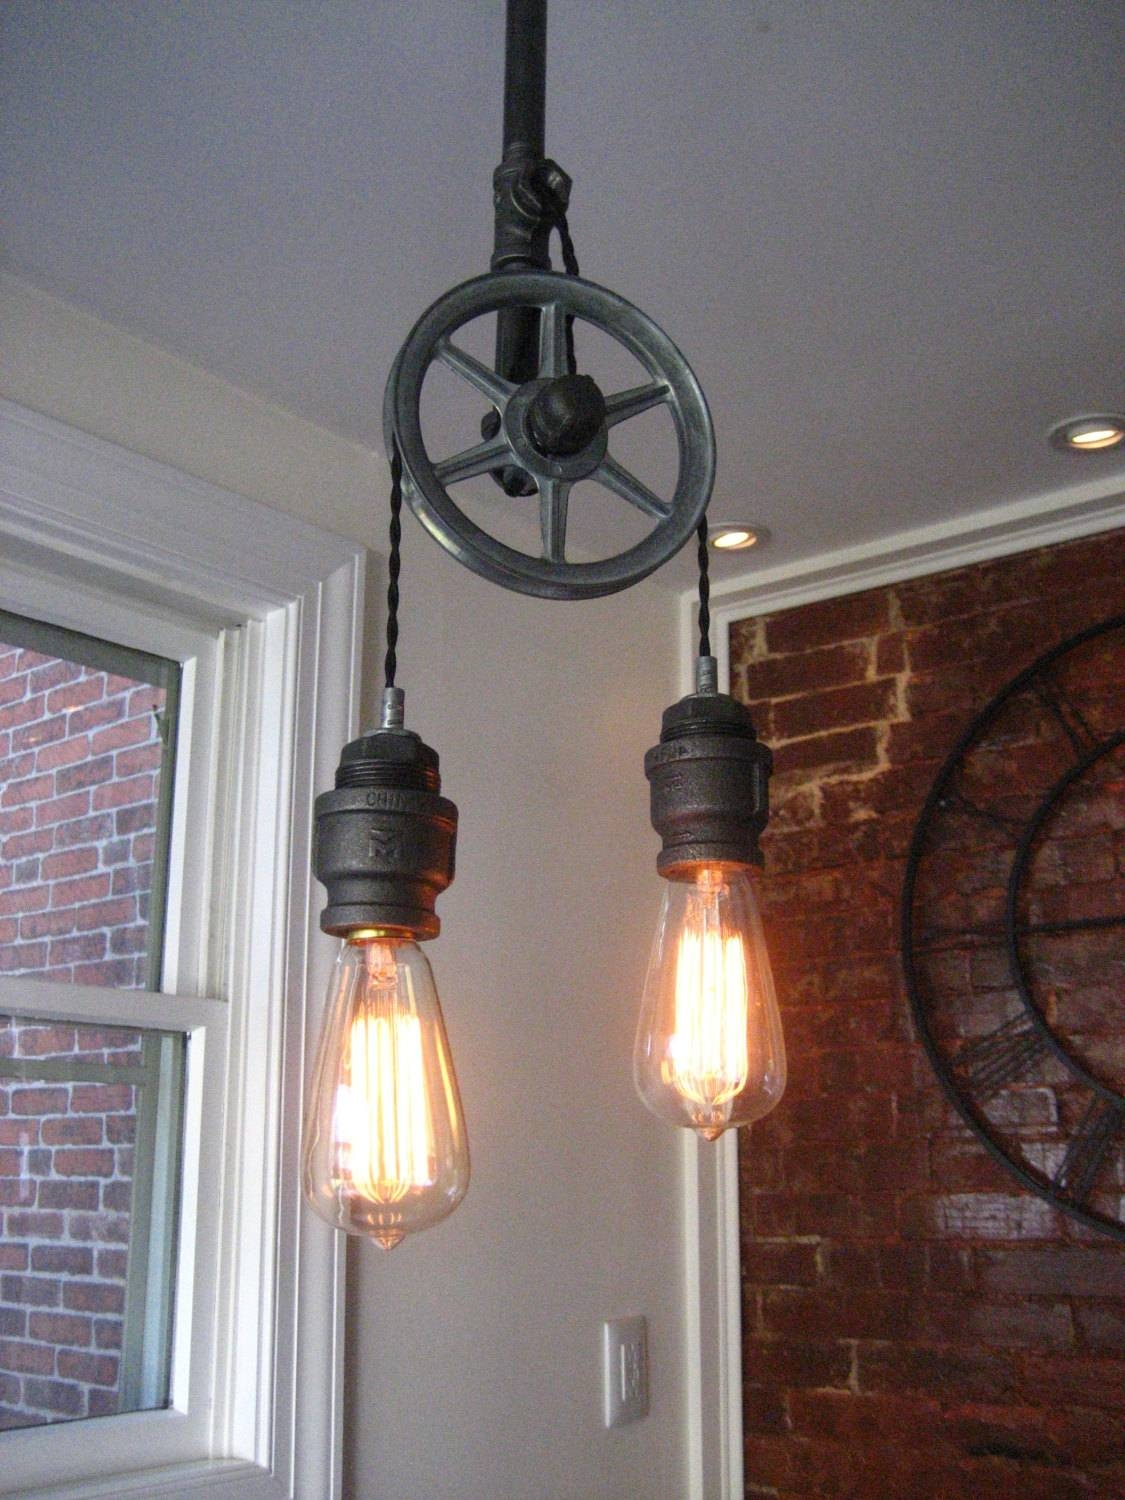 Pulley Light Metal Light Steampunk Ceiling Light pertaining to Pulley Lights Fixture (Image 12 of 15)